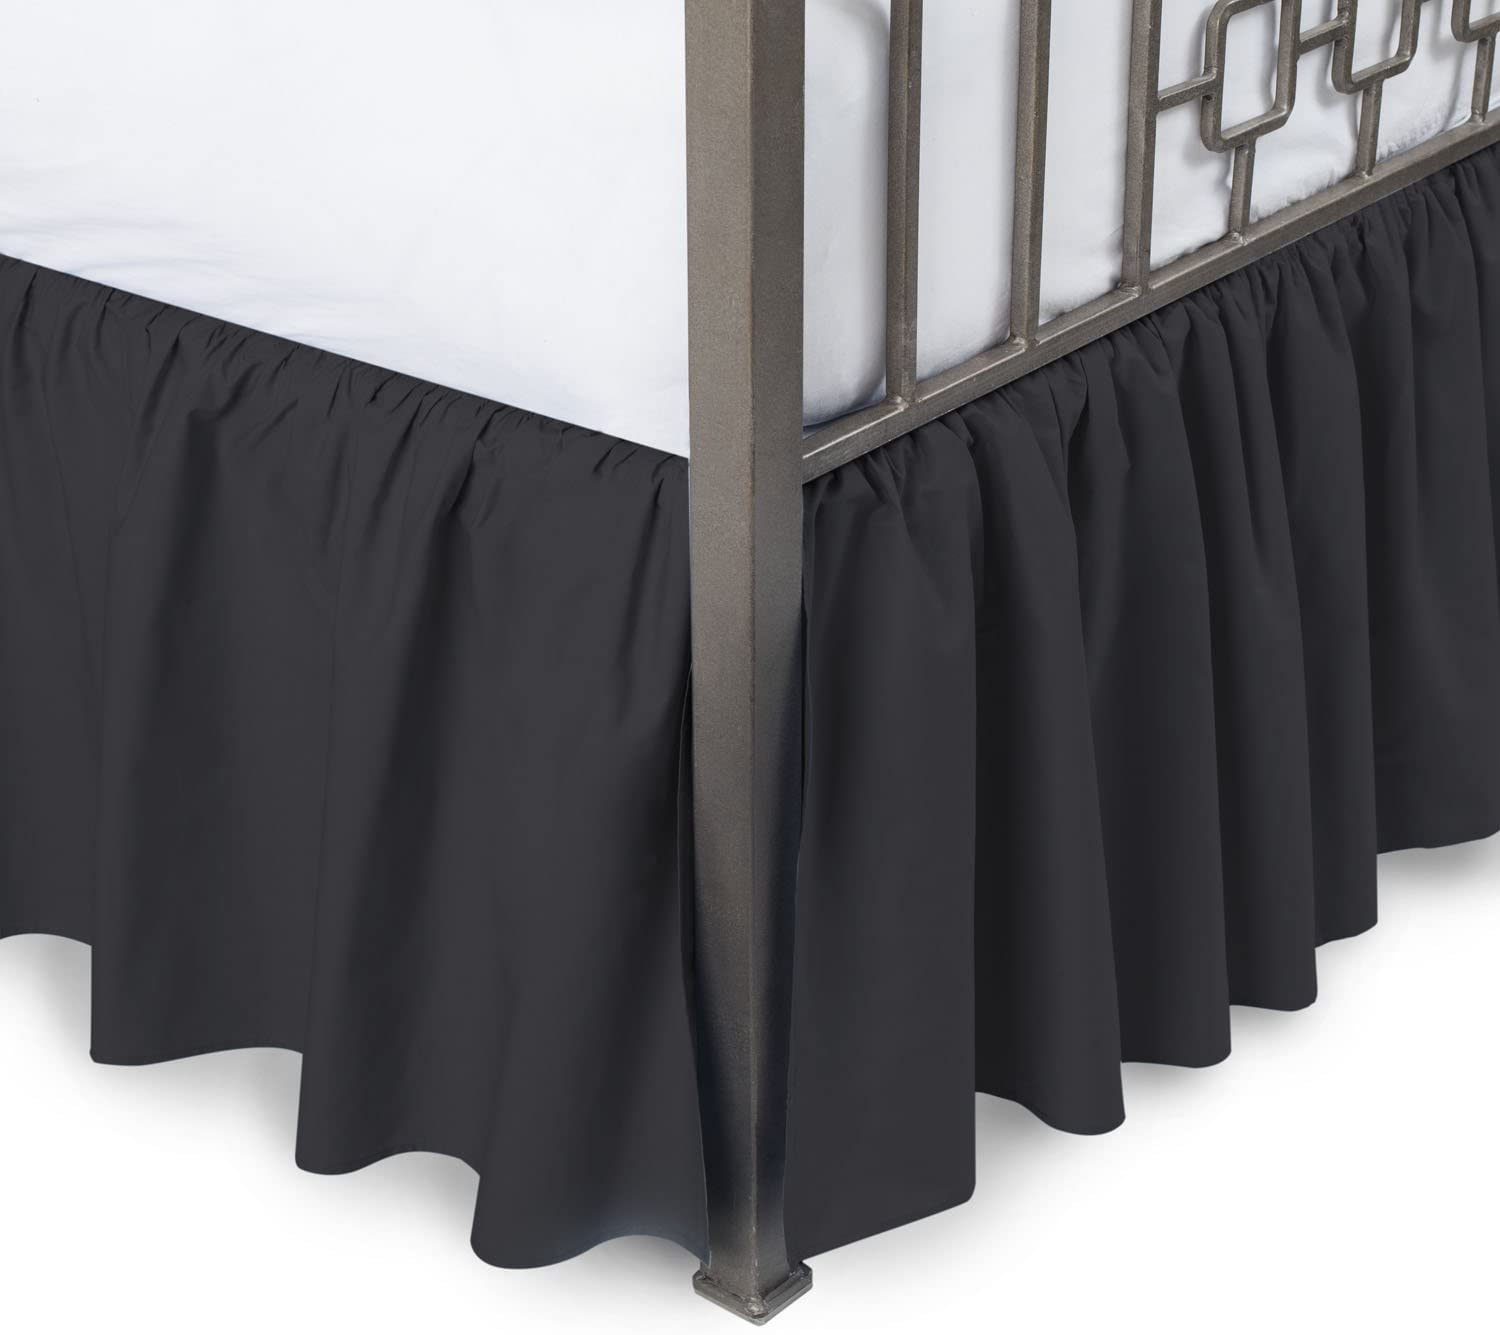 Ruffled Bed Skirt with Split Corners - Queen, Black, 18 Inch Drop Cotton Blend Bedskirt (Available in and 16 Colors) - Blissford Dust Ruffle.